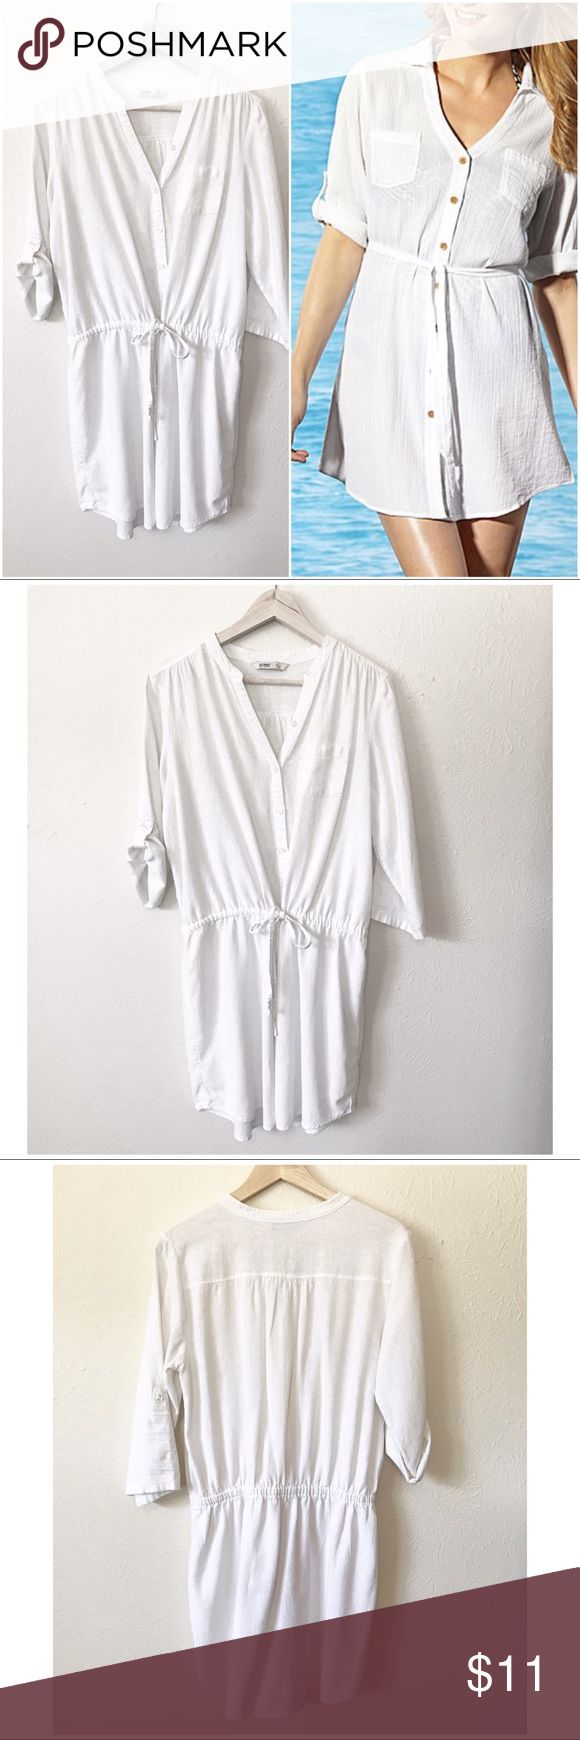 Old • Navy • Dress • Coverup Adorable white button down dress with waist drawstring tie. Sleeves can be worn long or 3/4 sleeve with button closure. It's a dress that can also be worn as a cute swimsuit coverup. Stock pic is not original dress/coverup, used for example only. Measurements pictured.  🔶Brand • Old Navy.  🔶Size • Large.  🔶Fabric • 55% linen 45% rayon.  🔶Condition • Worn maybe 3 times as a dress, not used for a coverup, laundered, does have a slight pull in fabric as shown in…